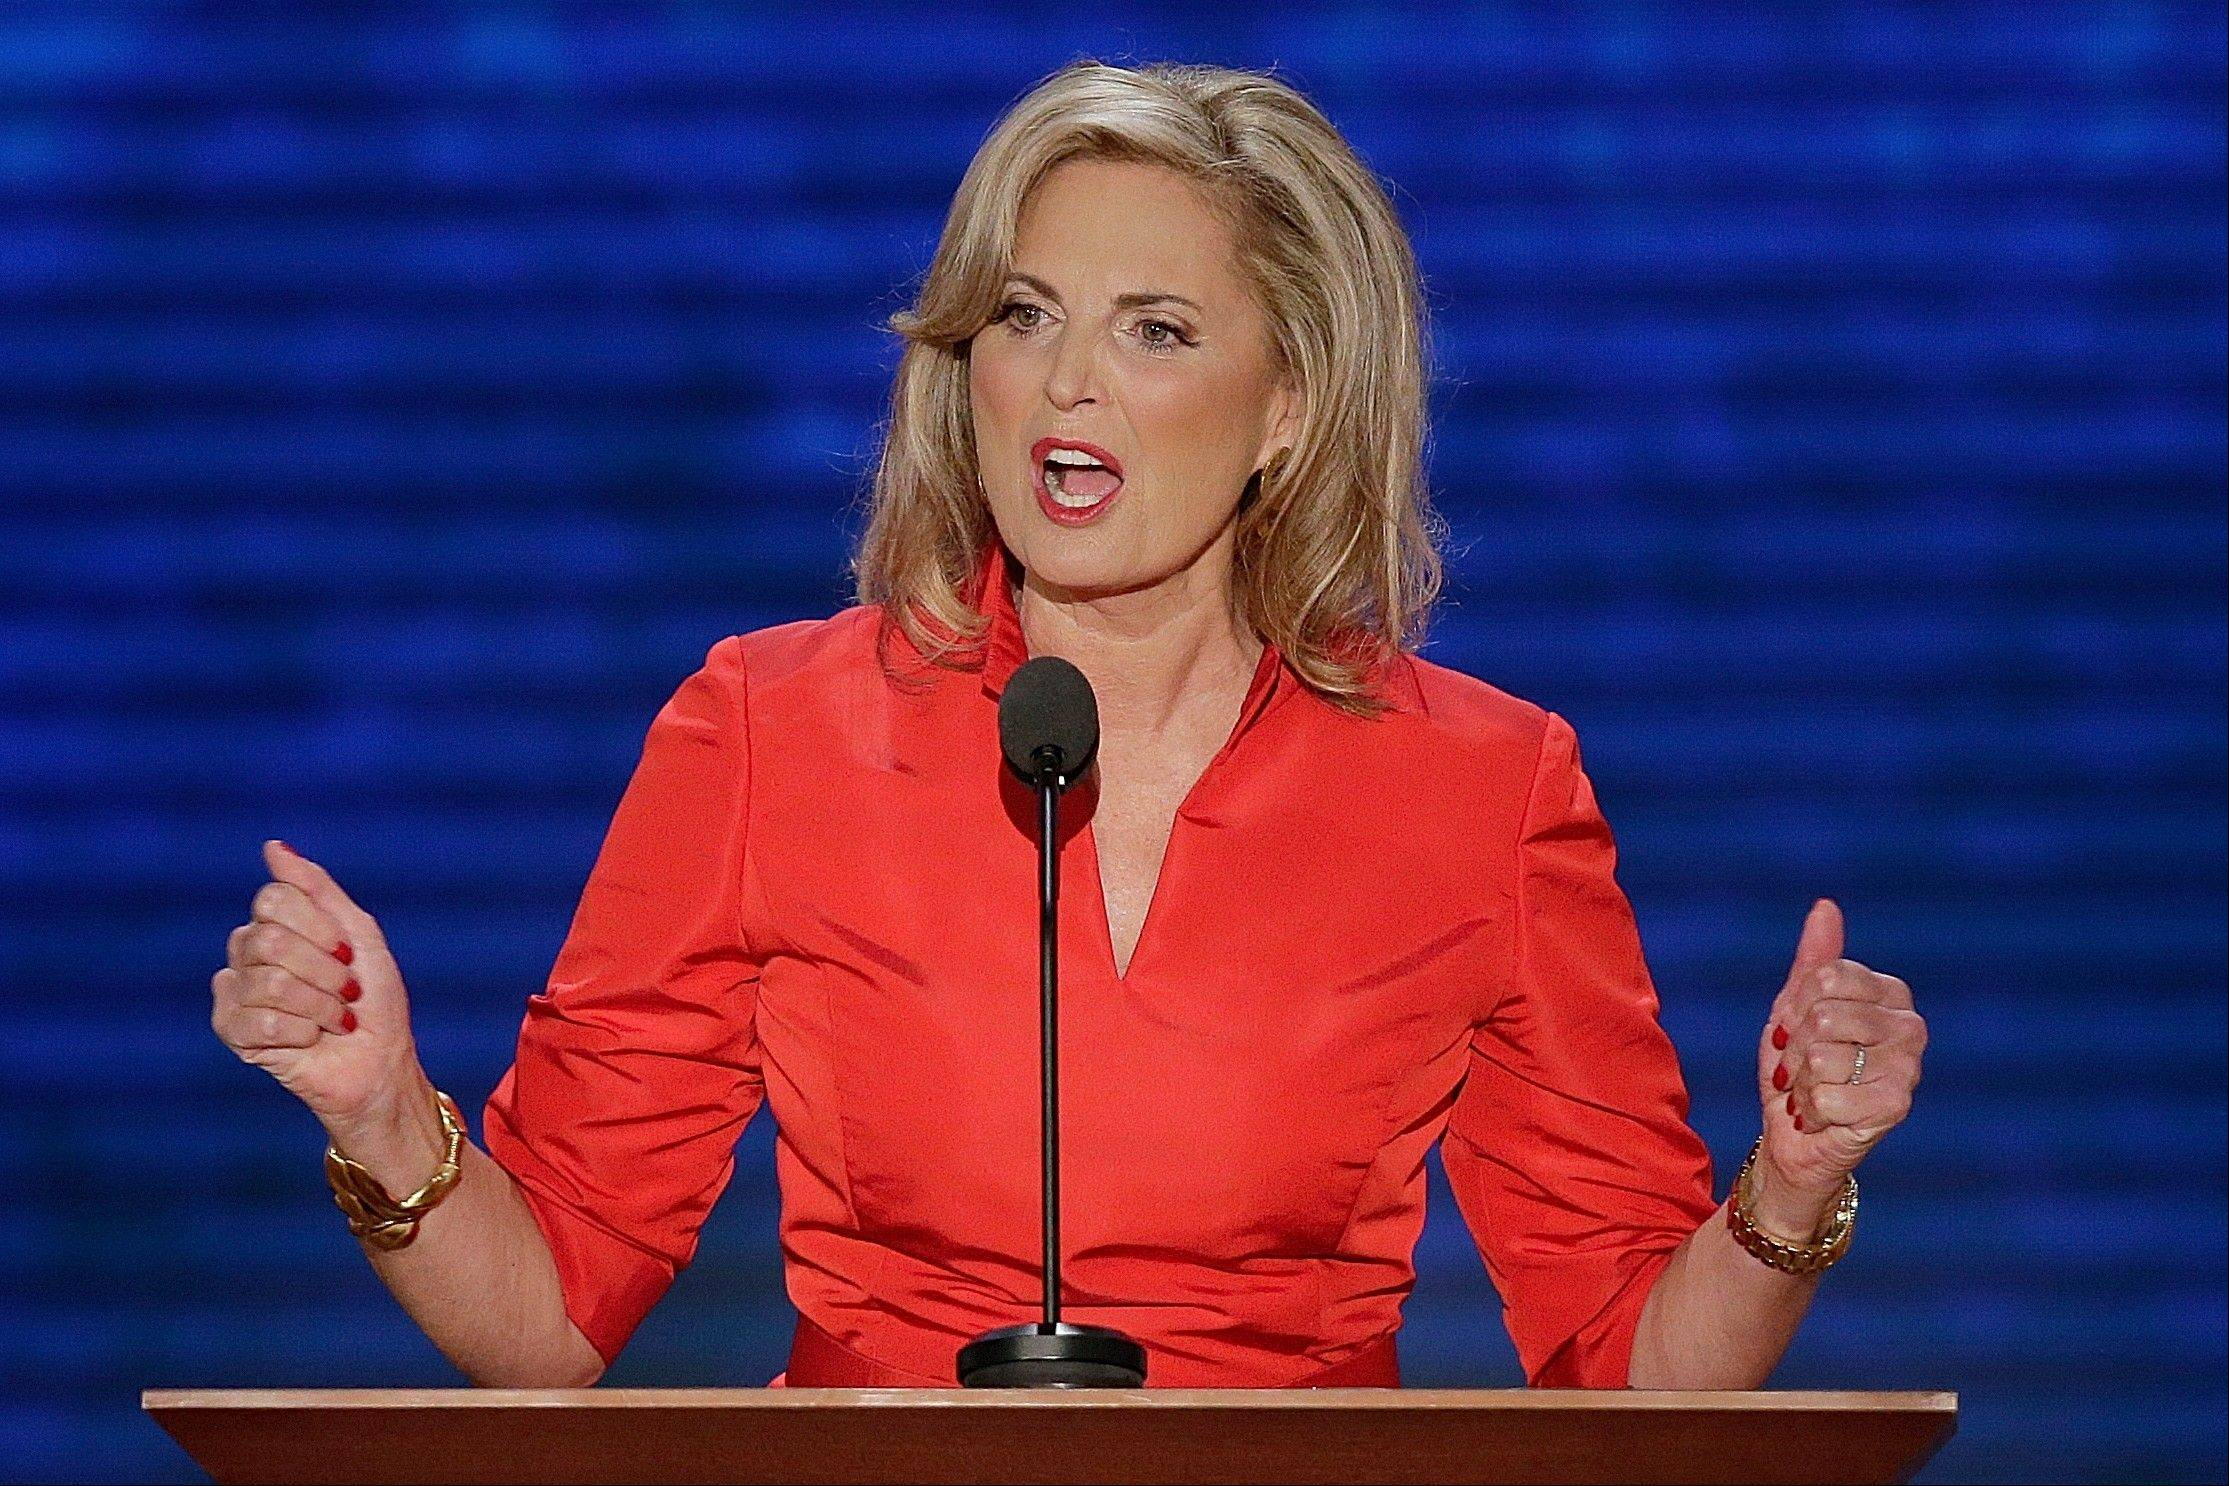 Ann Romney, wife of U.S. Republican presidential candidate Mitt Romney, addresses the Republican National Convention.